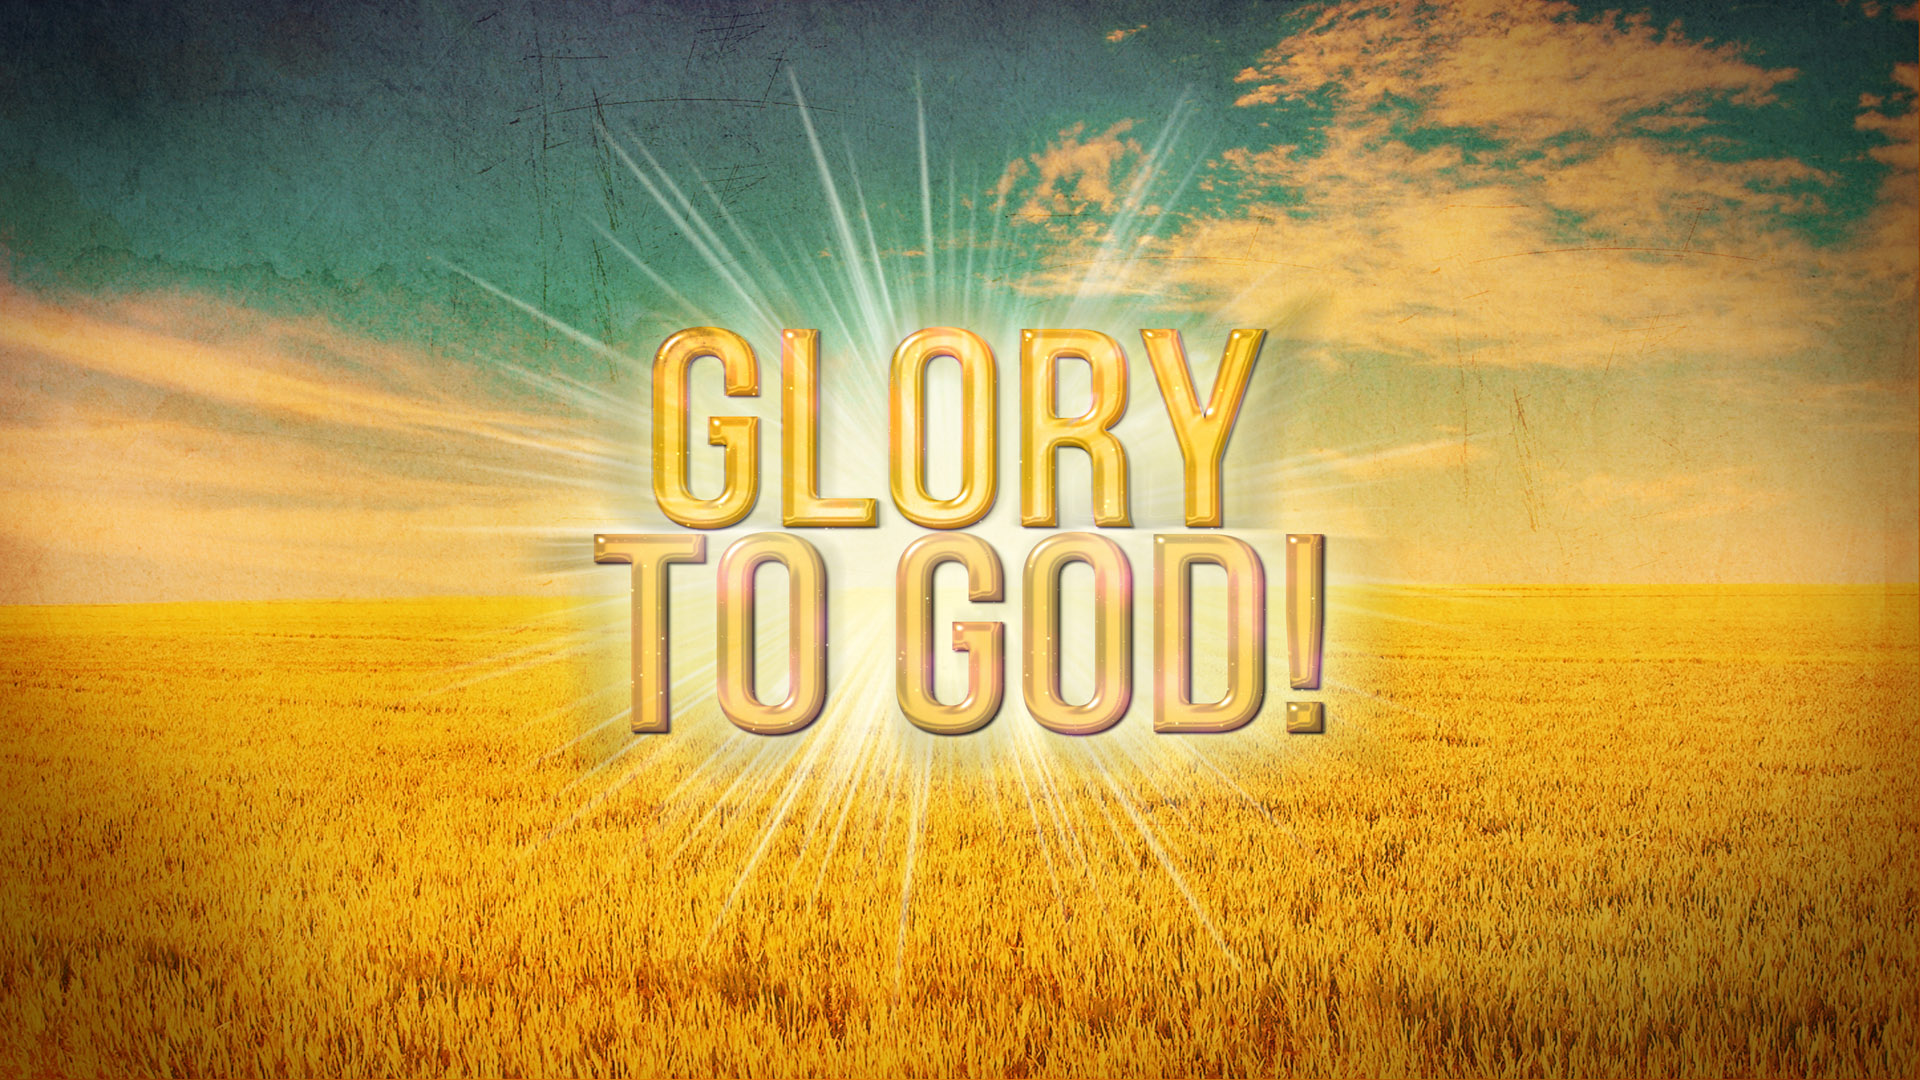 Quotes about Giving glory to god (33 quotes)